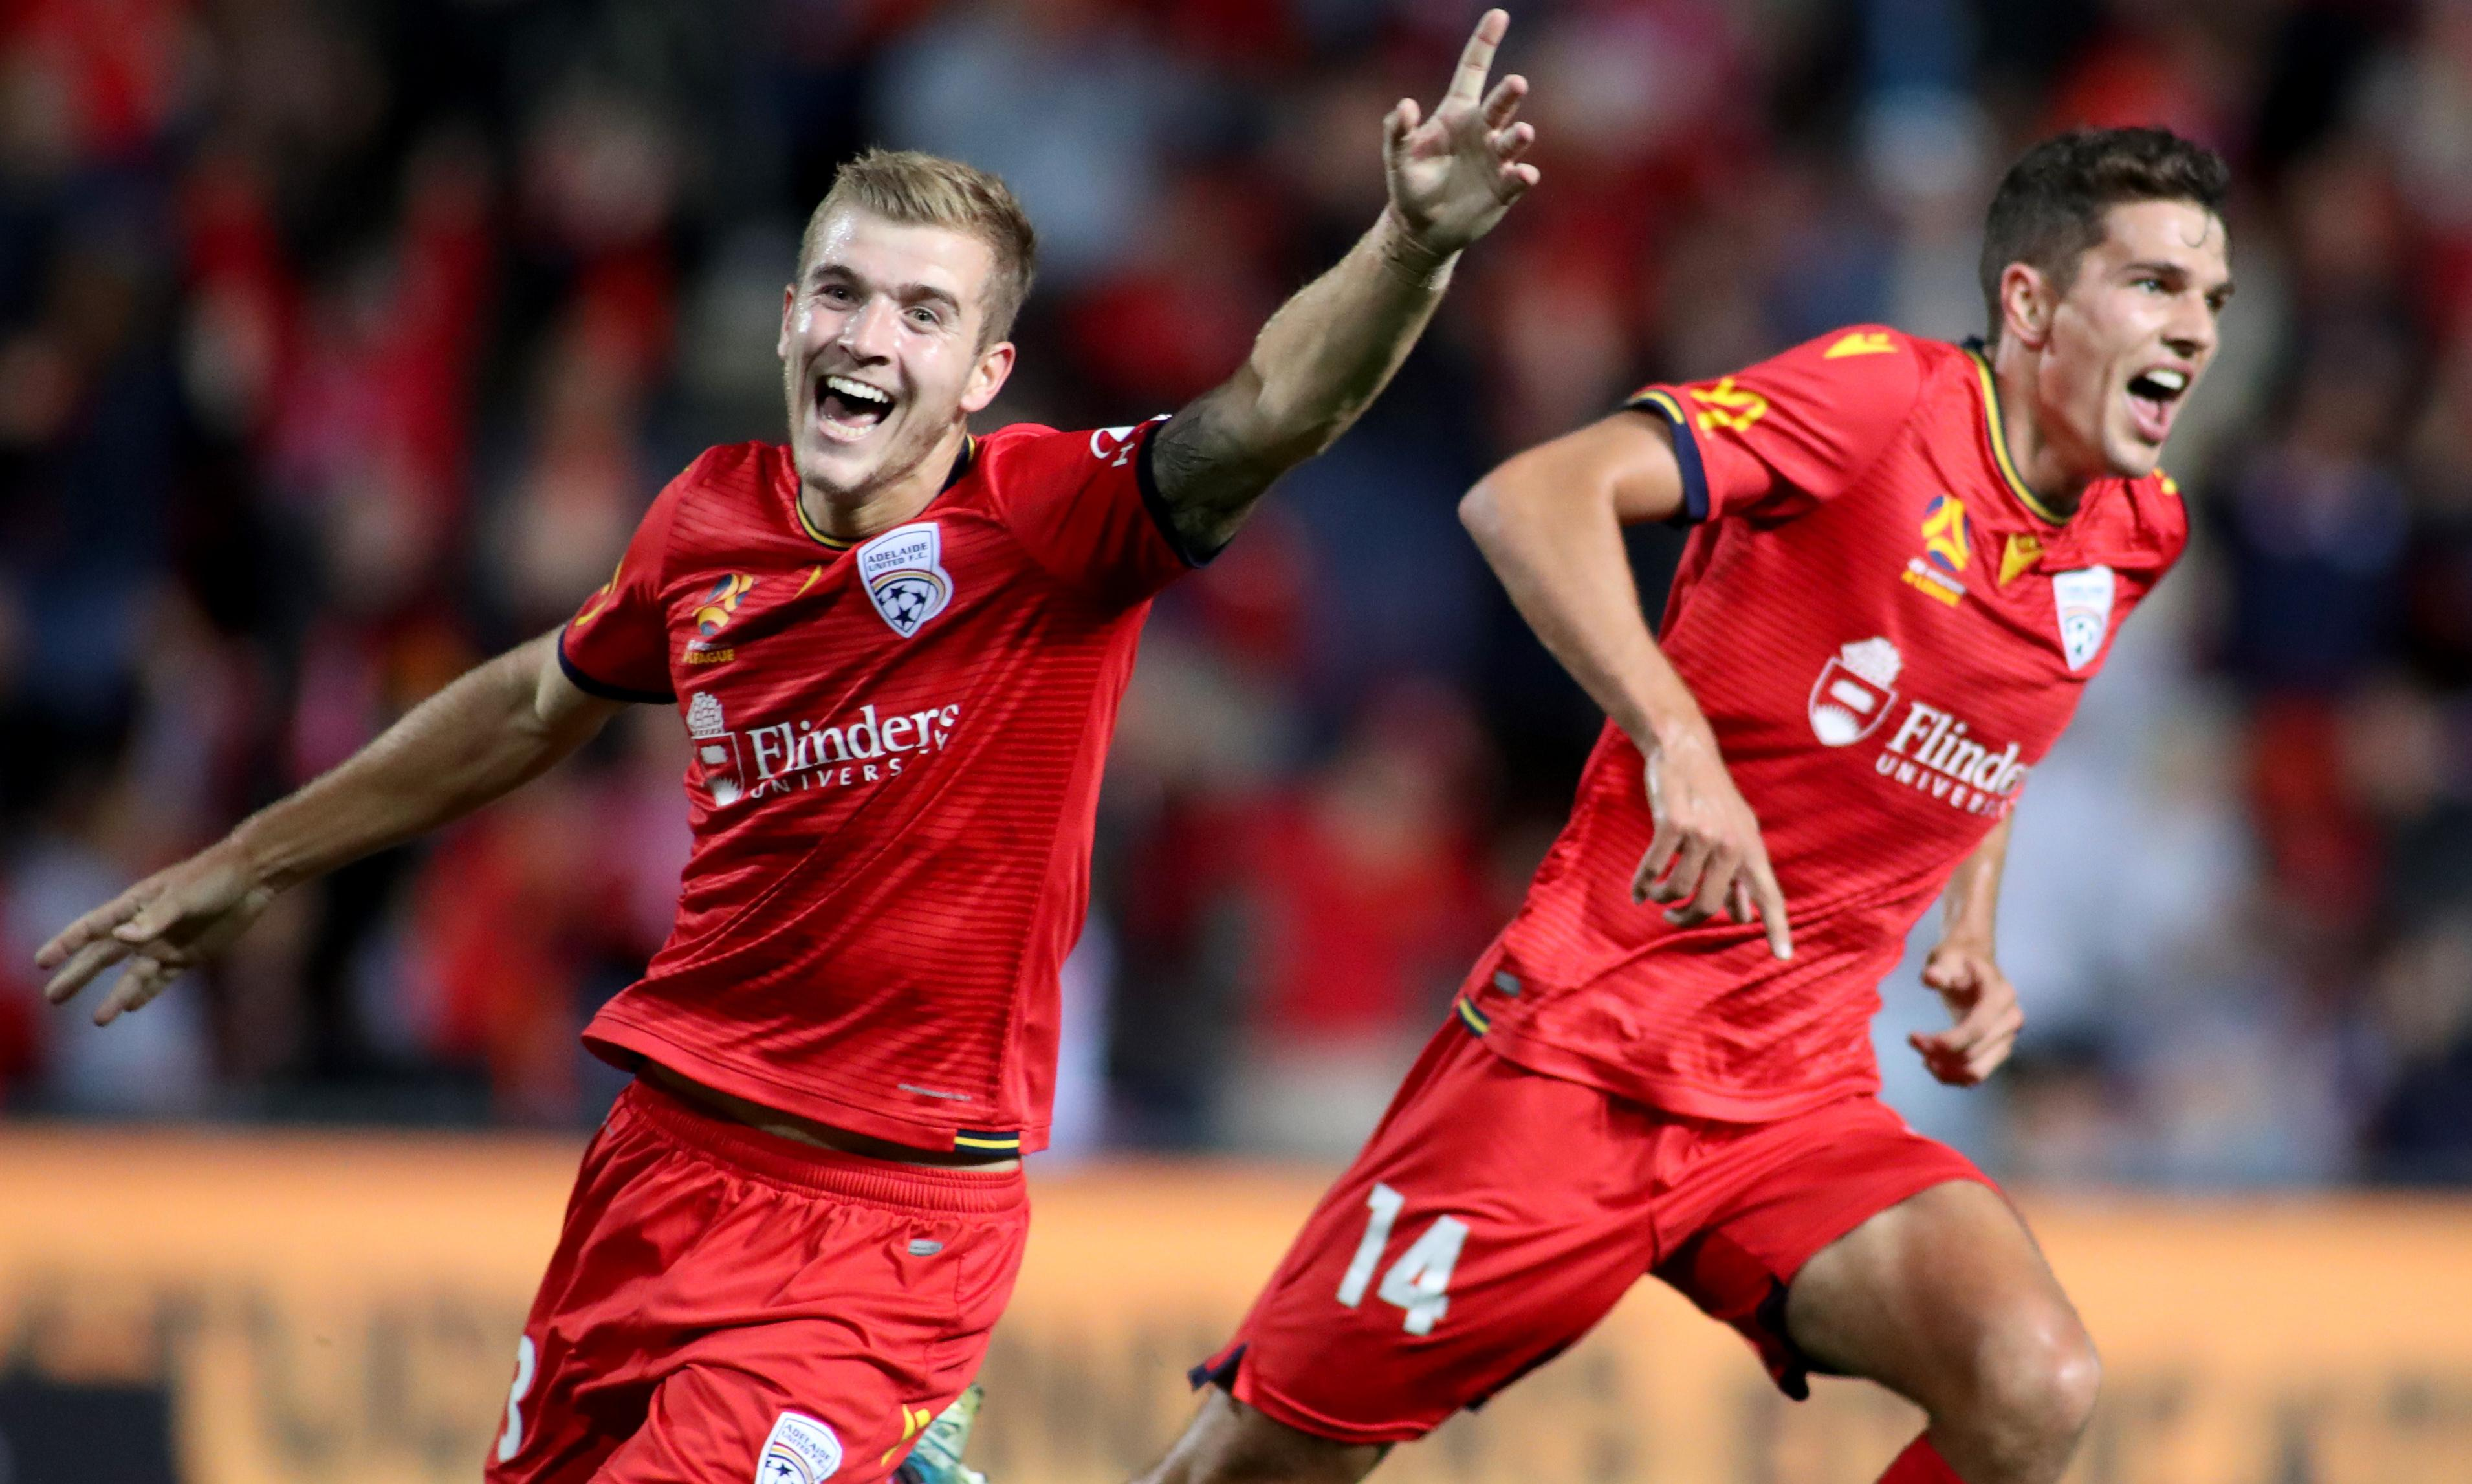 Adelaide United set pulses racing on A-League date night